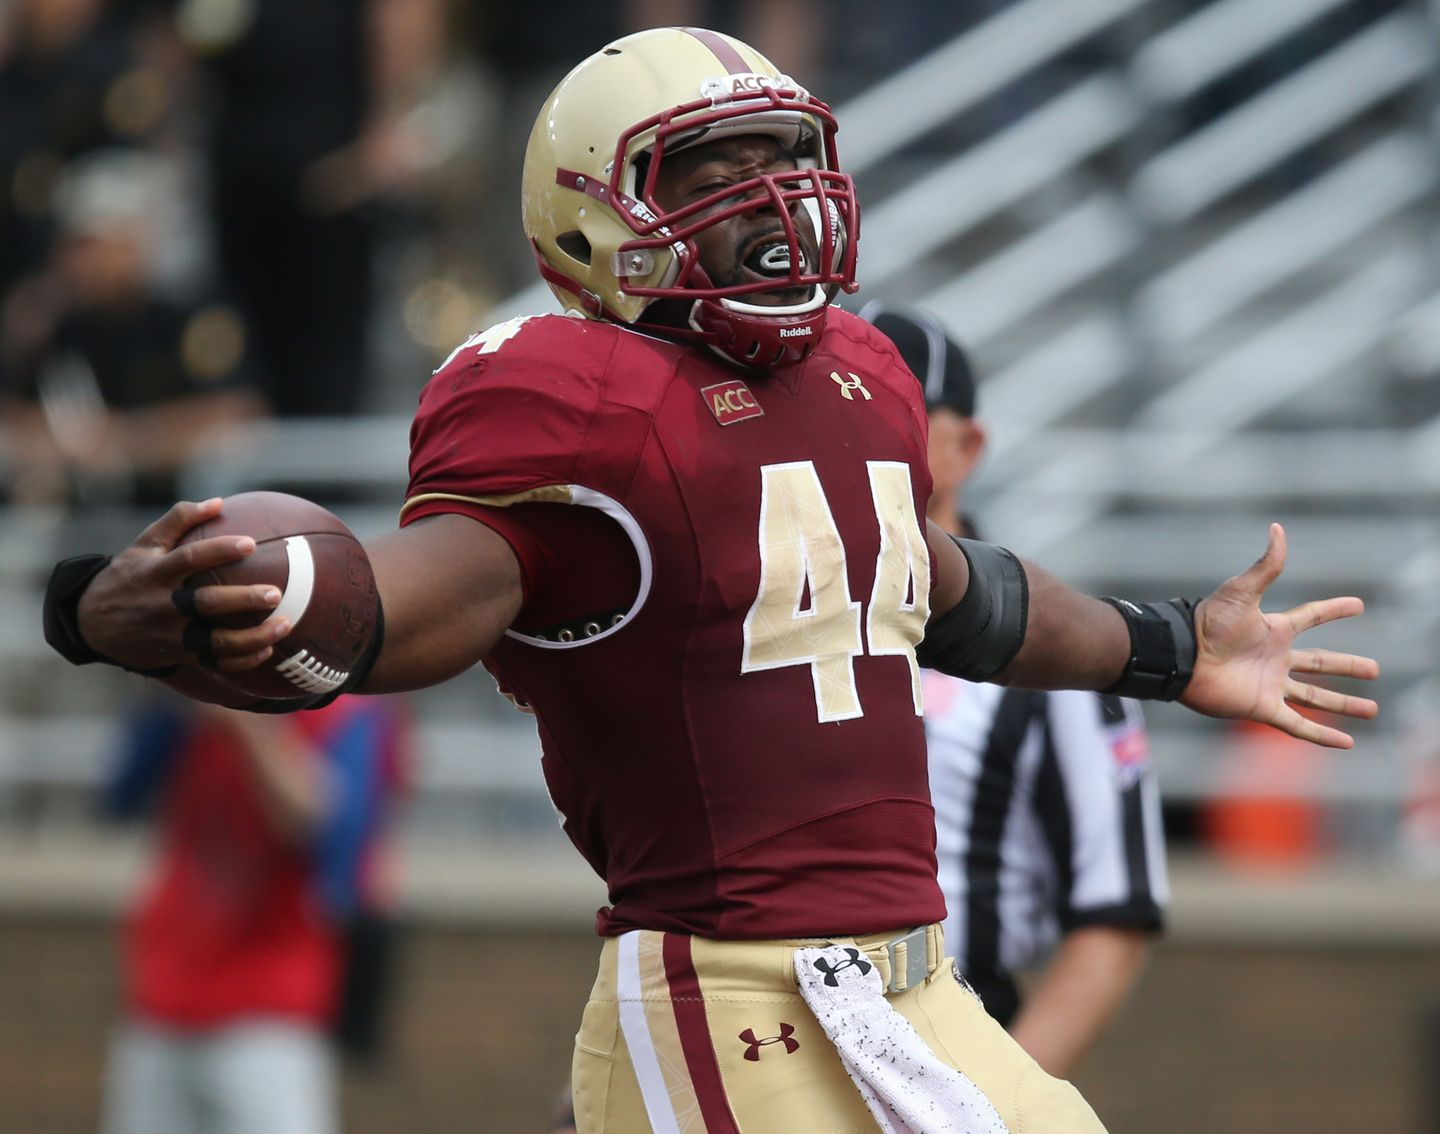 BC coach puts safety over record for Andre Williams - The Boston Globe